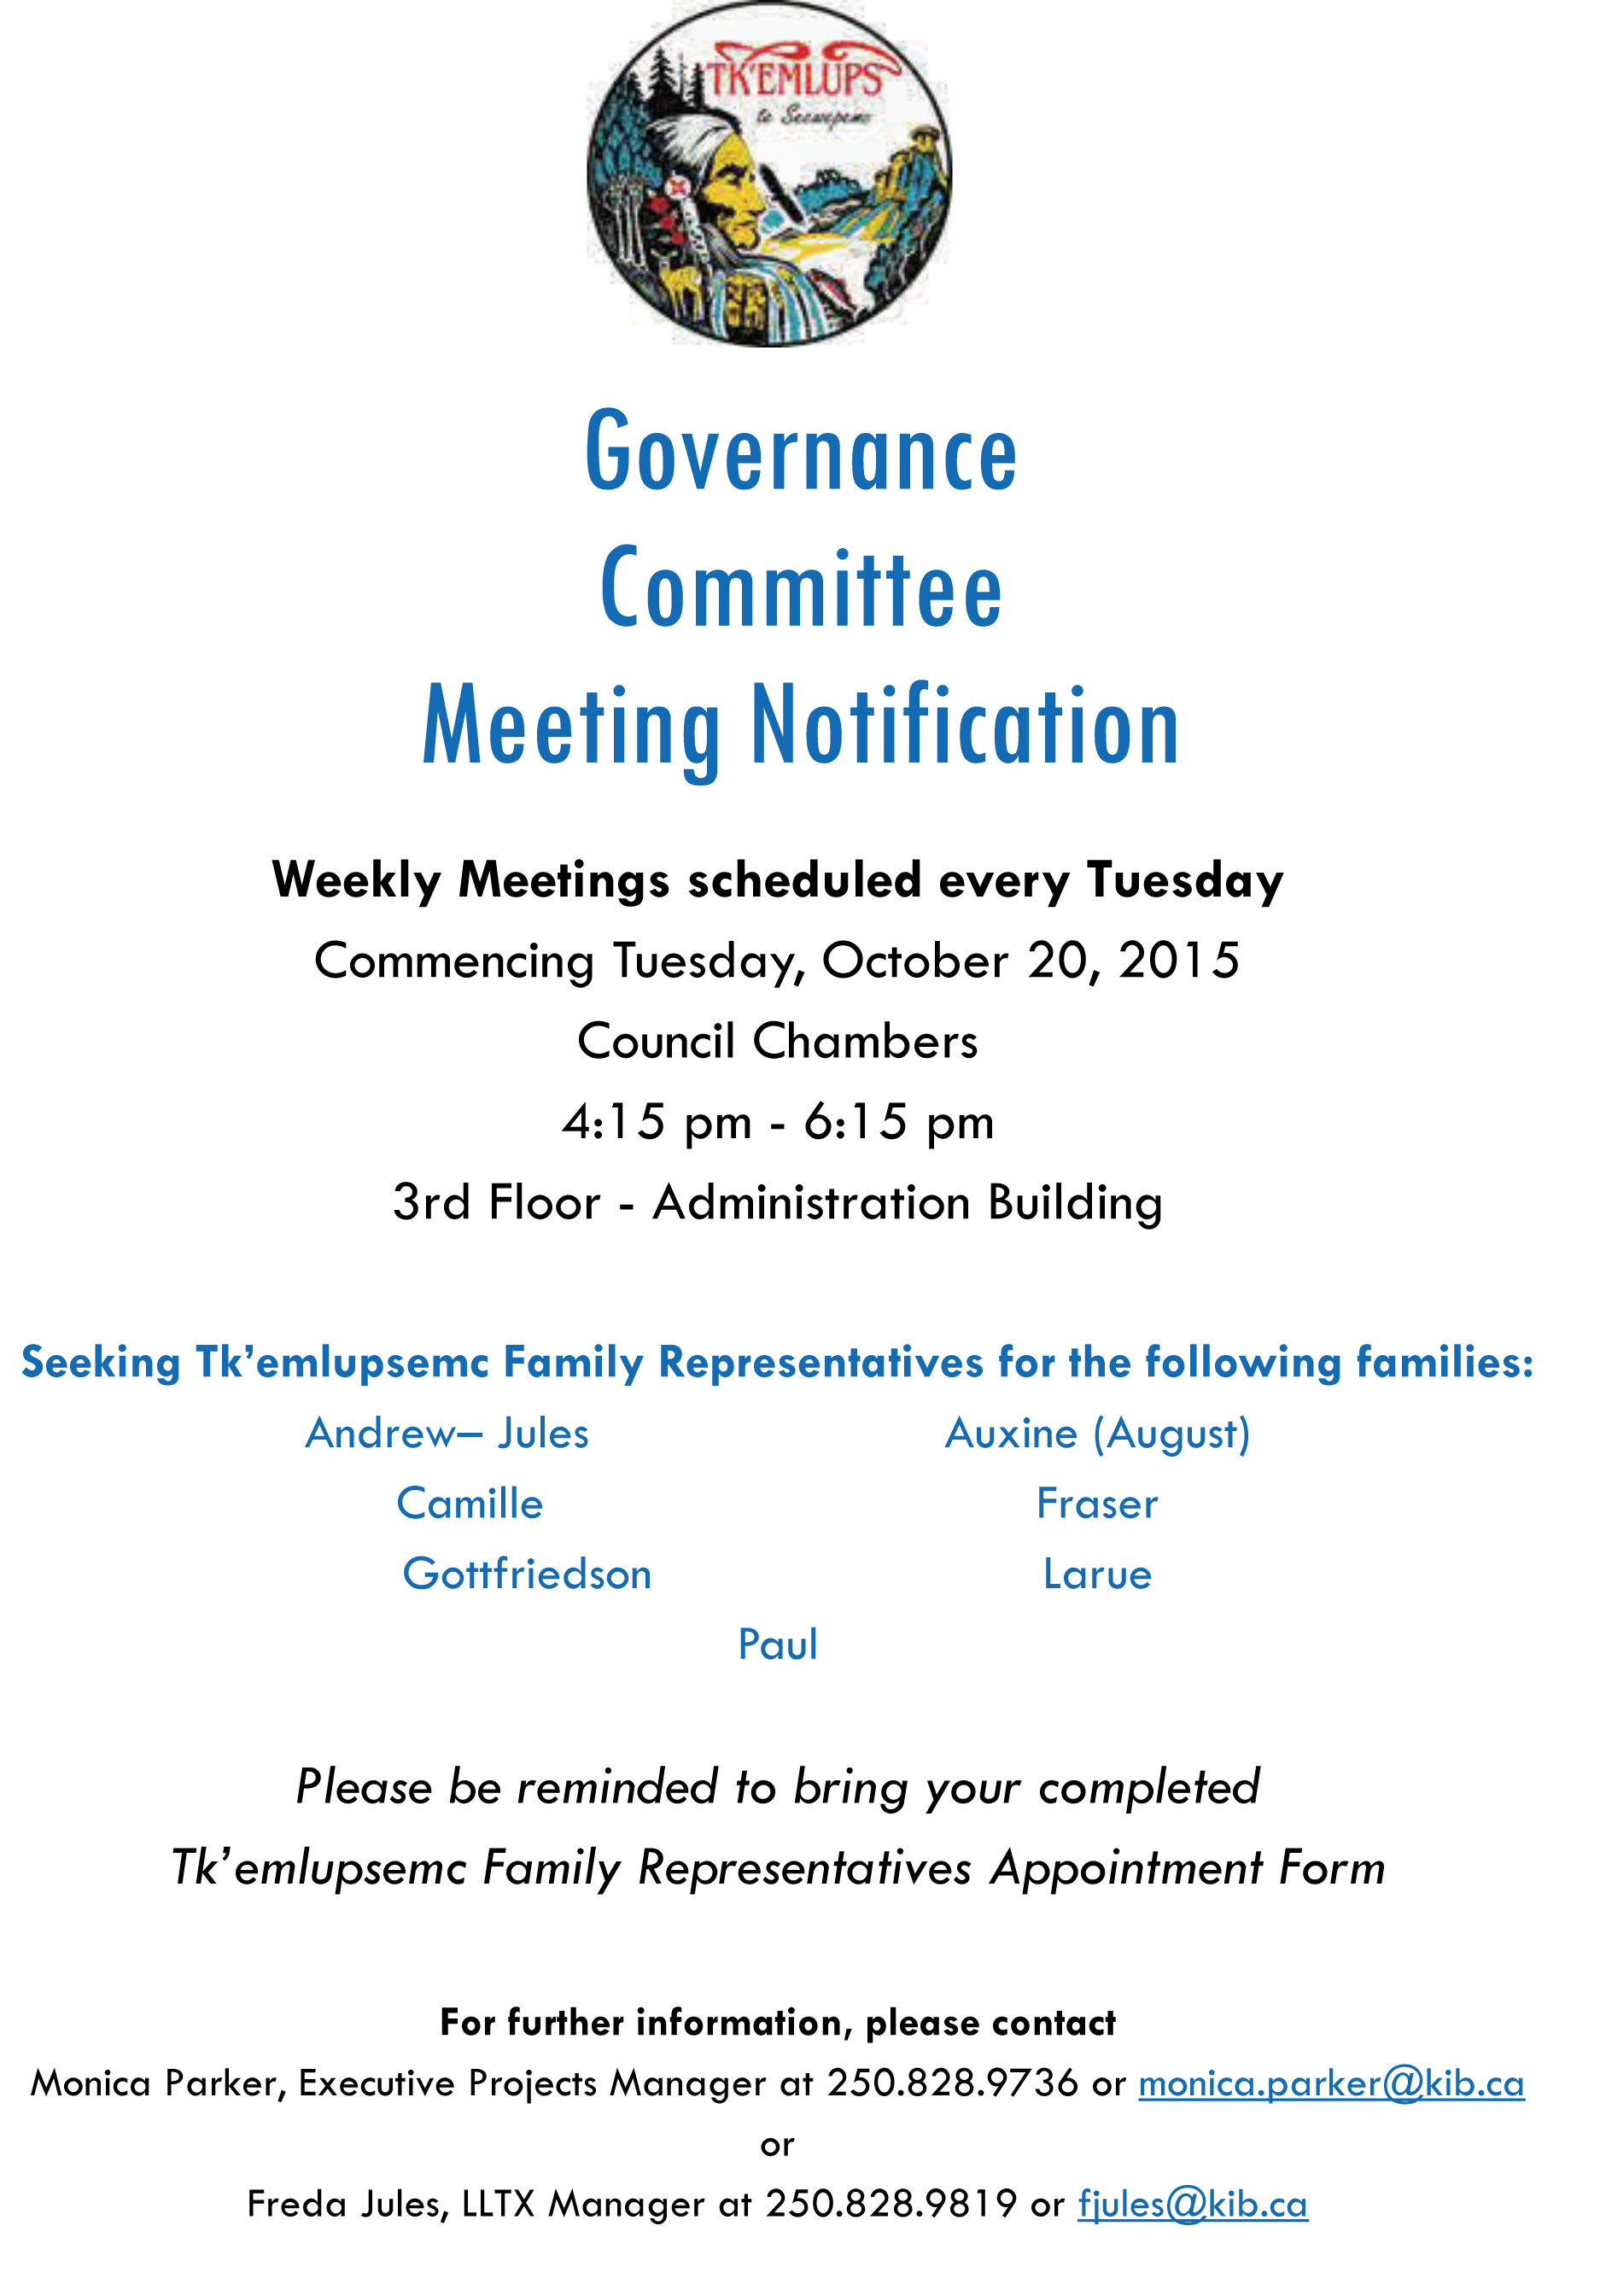 Governance-Committee-Meeting-Notification